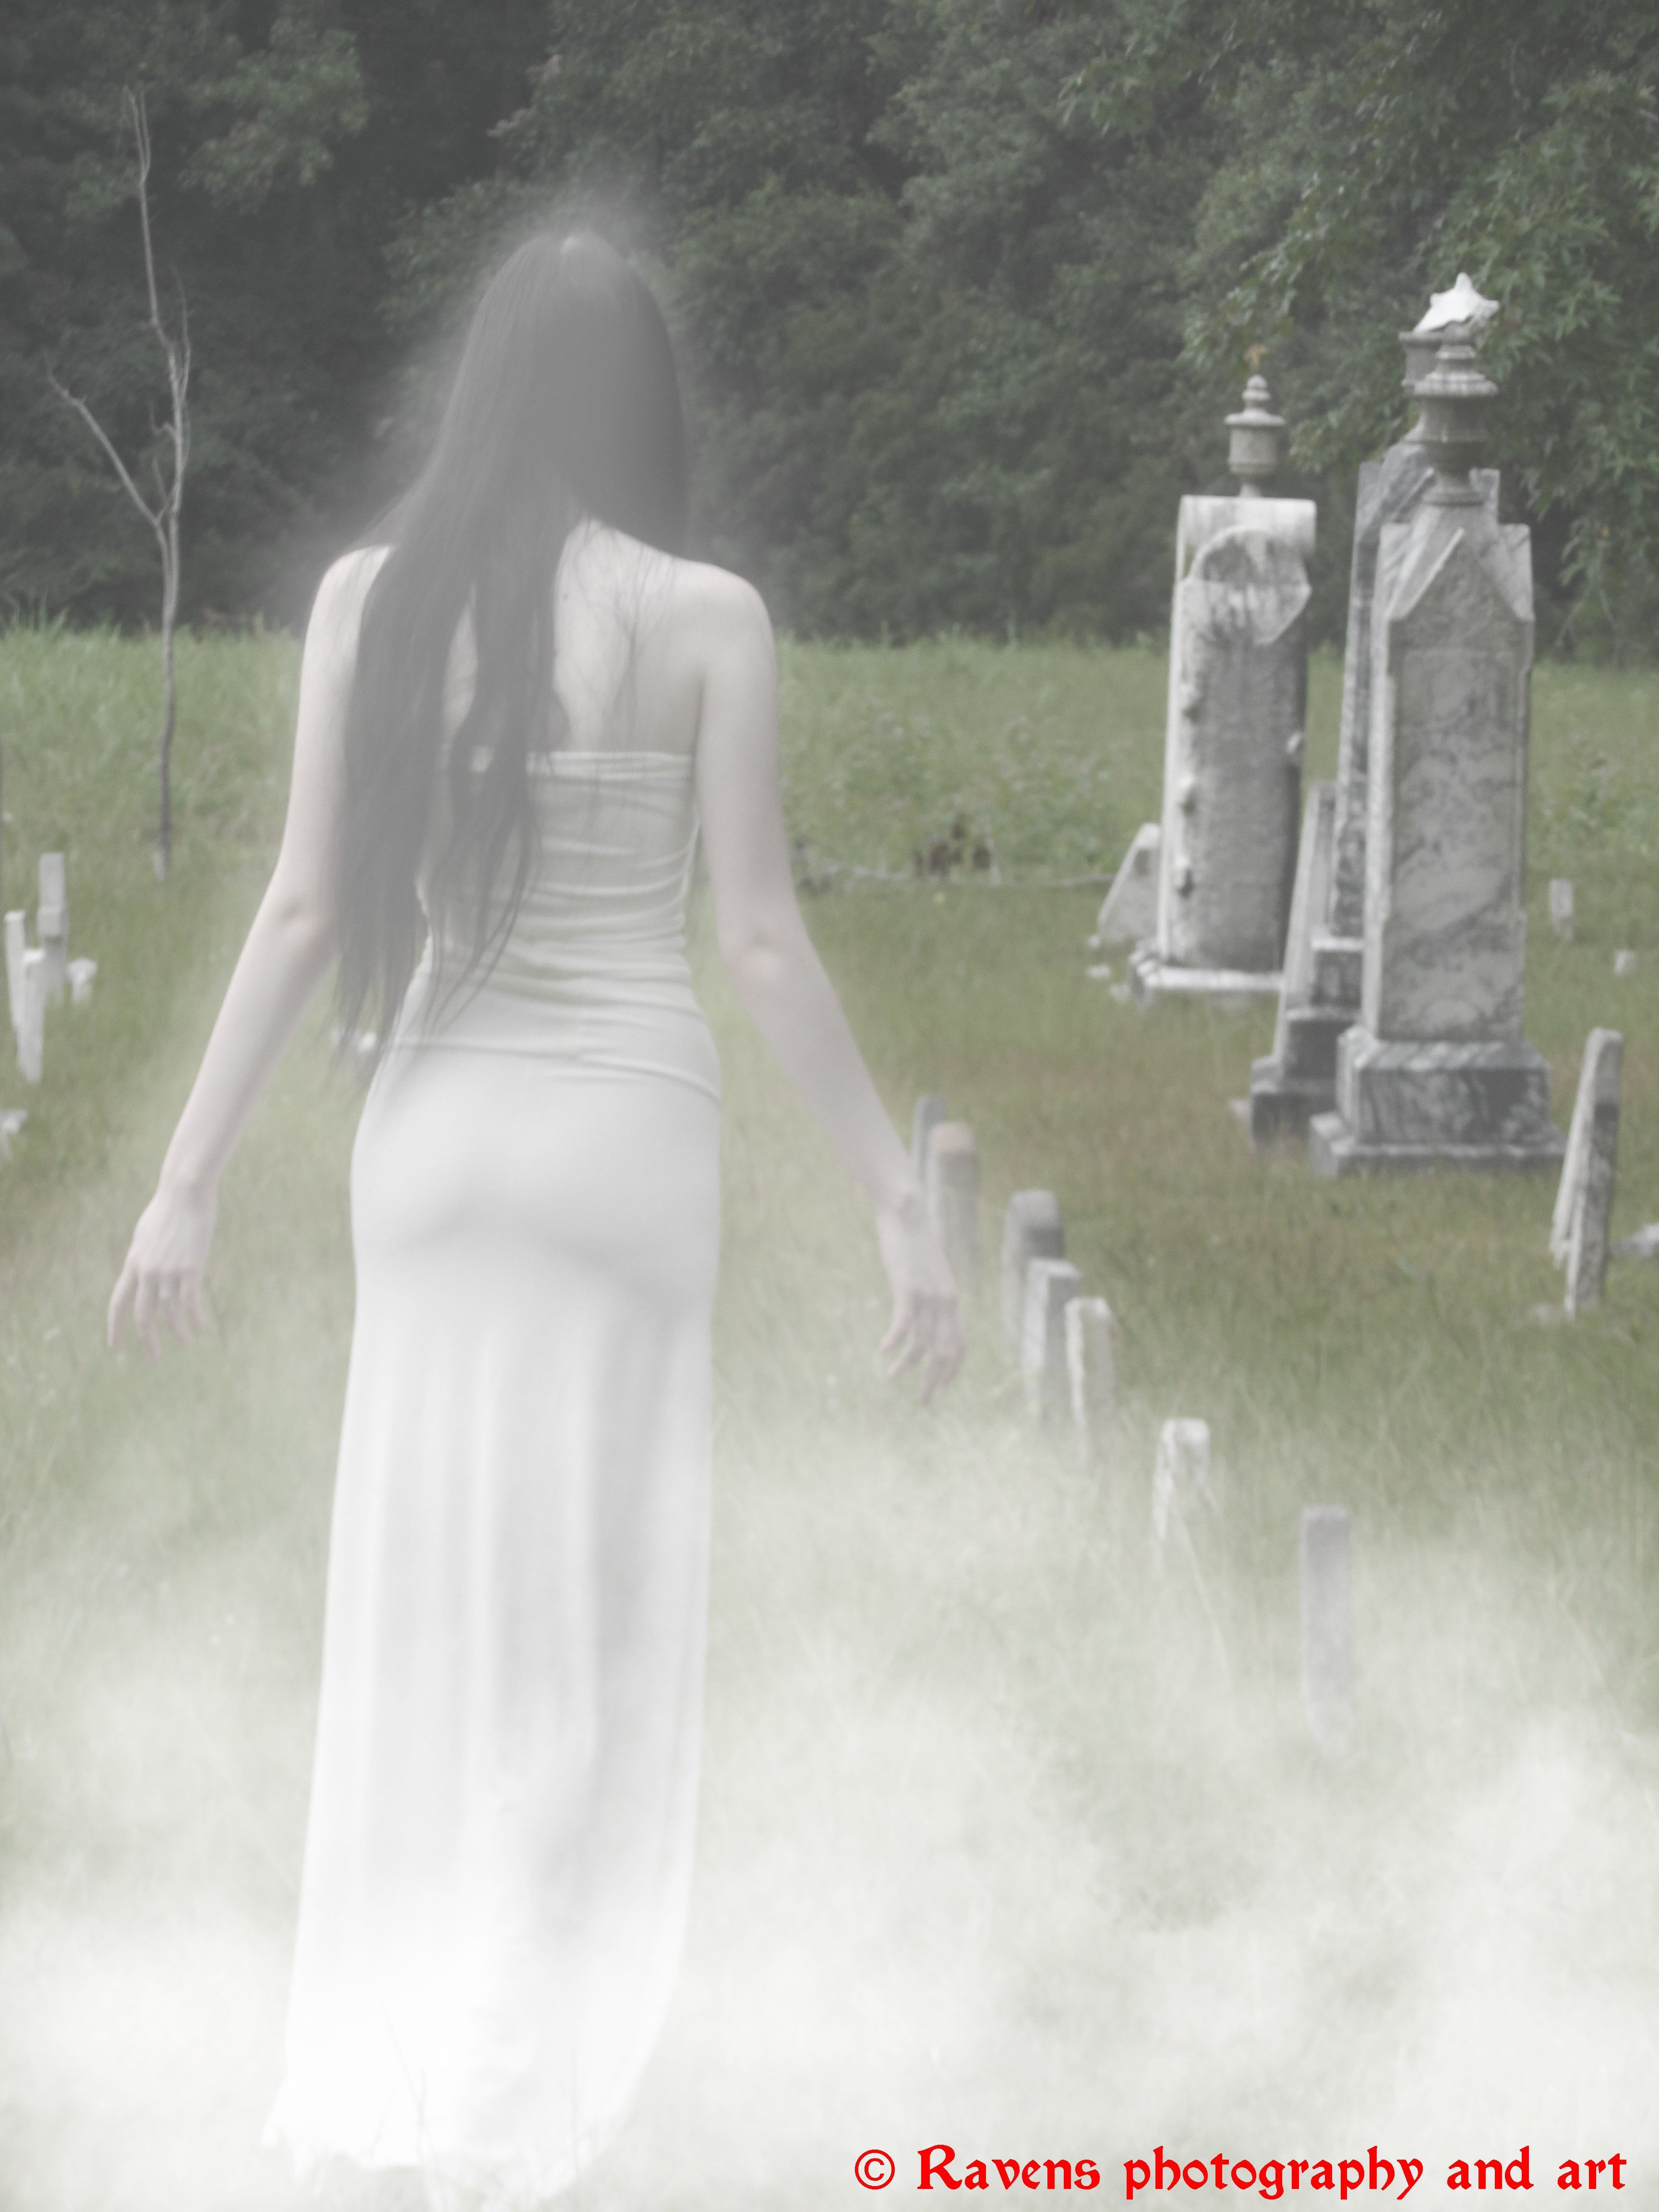 Her ghost in the fog, First edit by GothicRavenMidnight